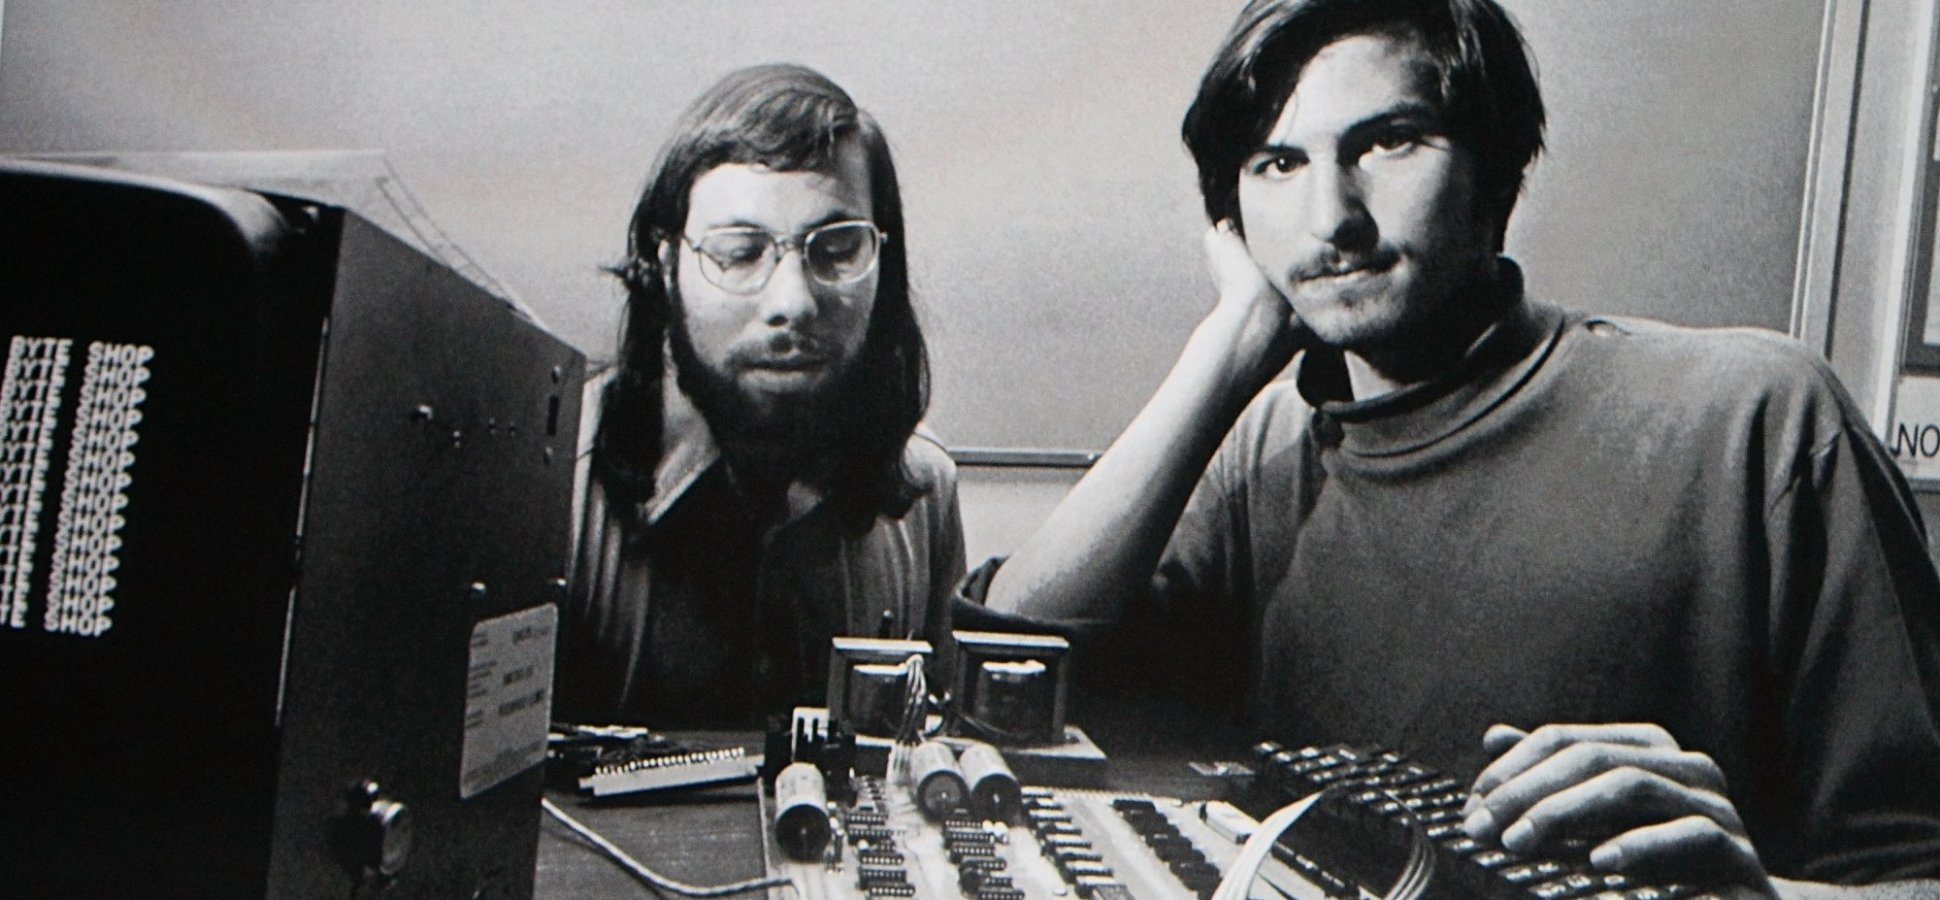 Why Steve Jobs Believed If He and Woz Had Not Done This 1 Thing, 'There Would Have Been No Apple'